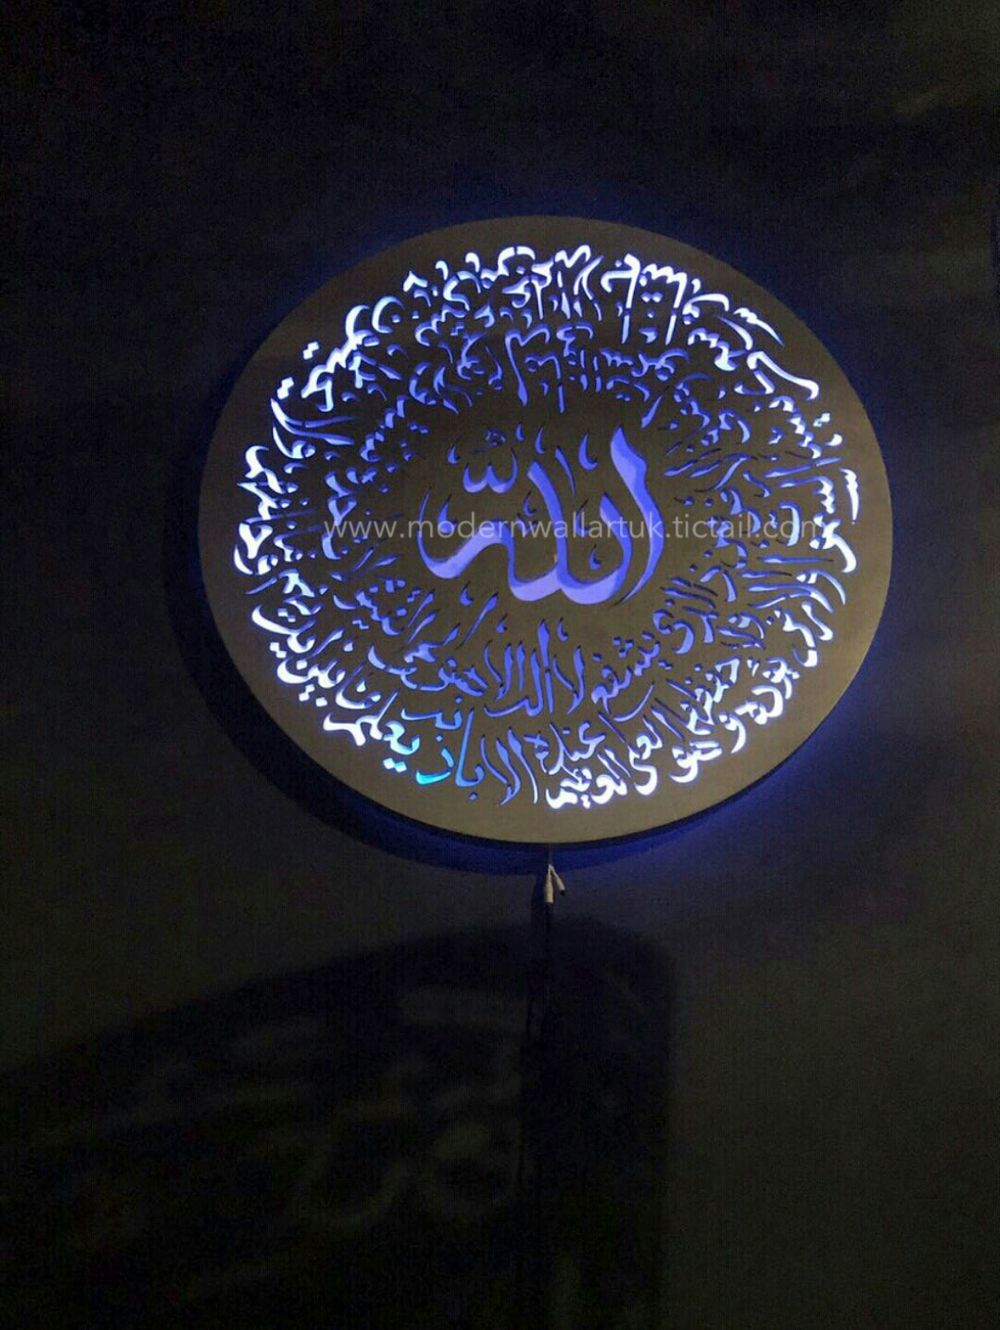 Led Ayatul Kursi Wall Art Designed In A Large Circular Wood That Beautifully Sits A Little Elevated From The Wall Wall Art Uk Modern Wall Art Islamic Wall Art